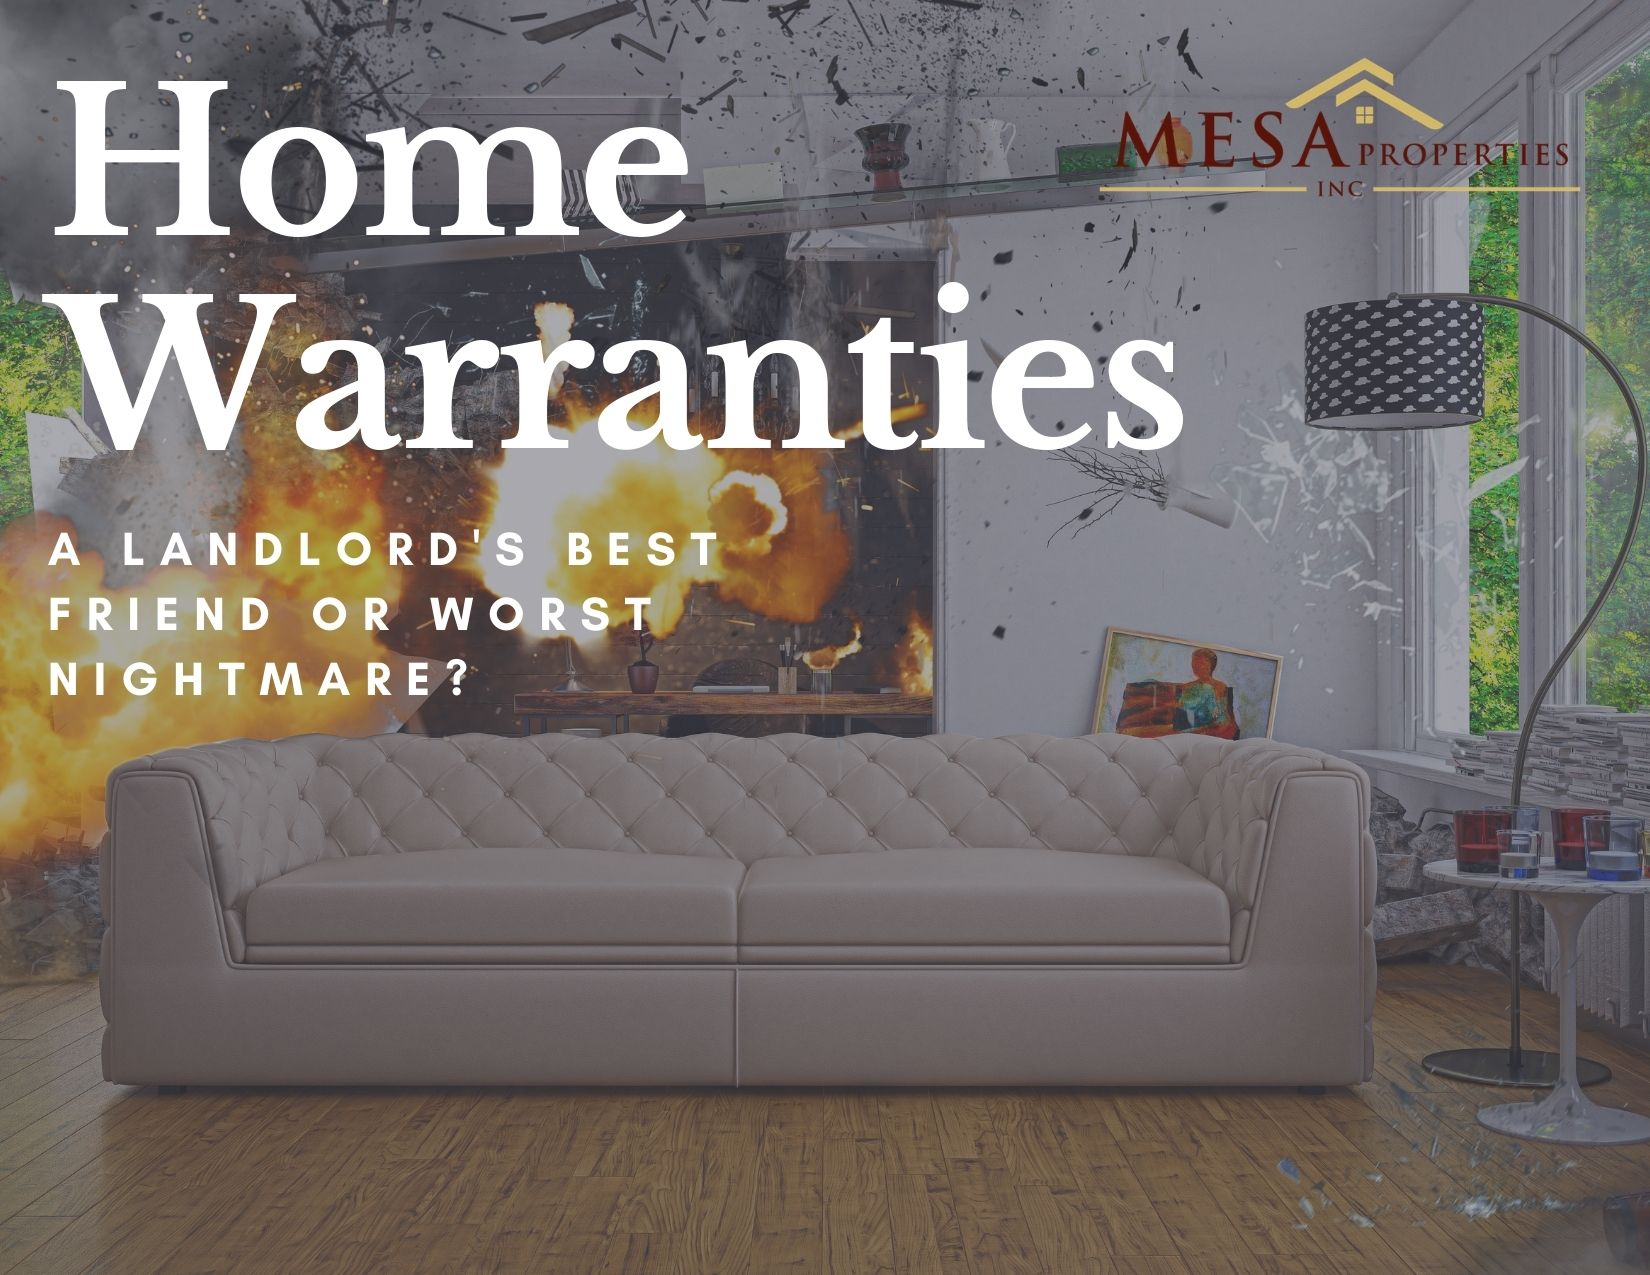 Home Warranties - A Landlord's Best Friend Or Worst Nightmare?